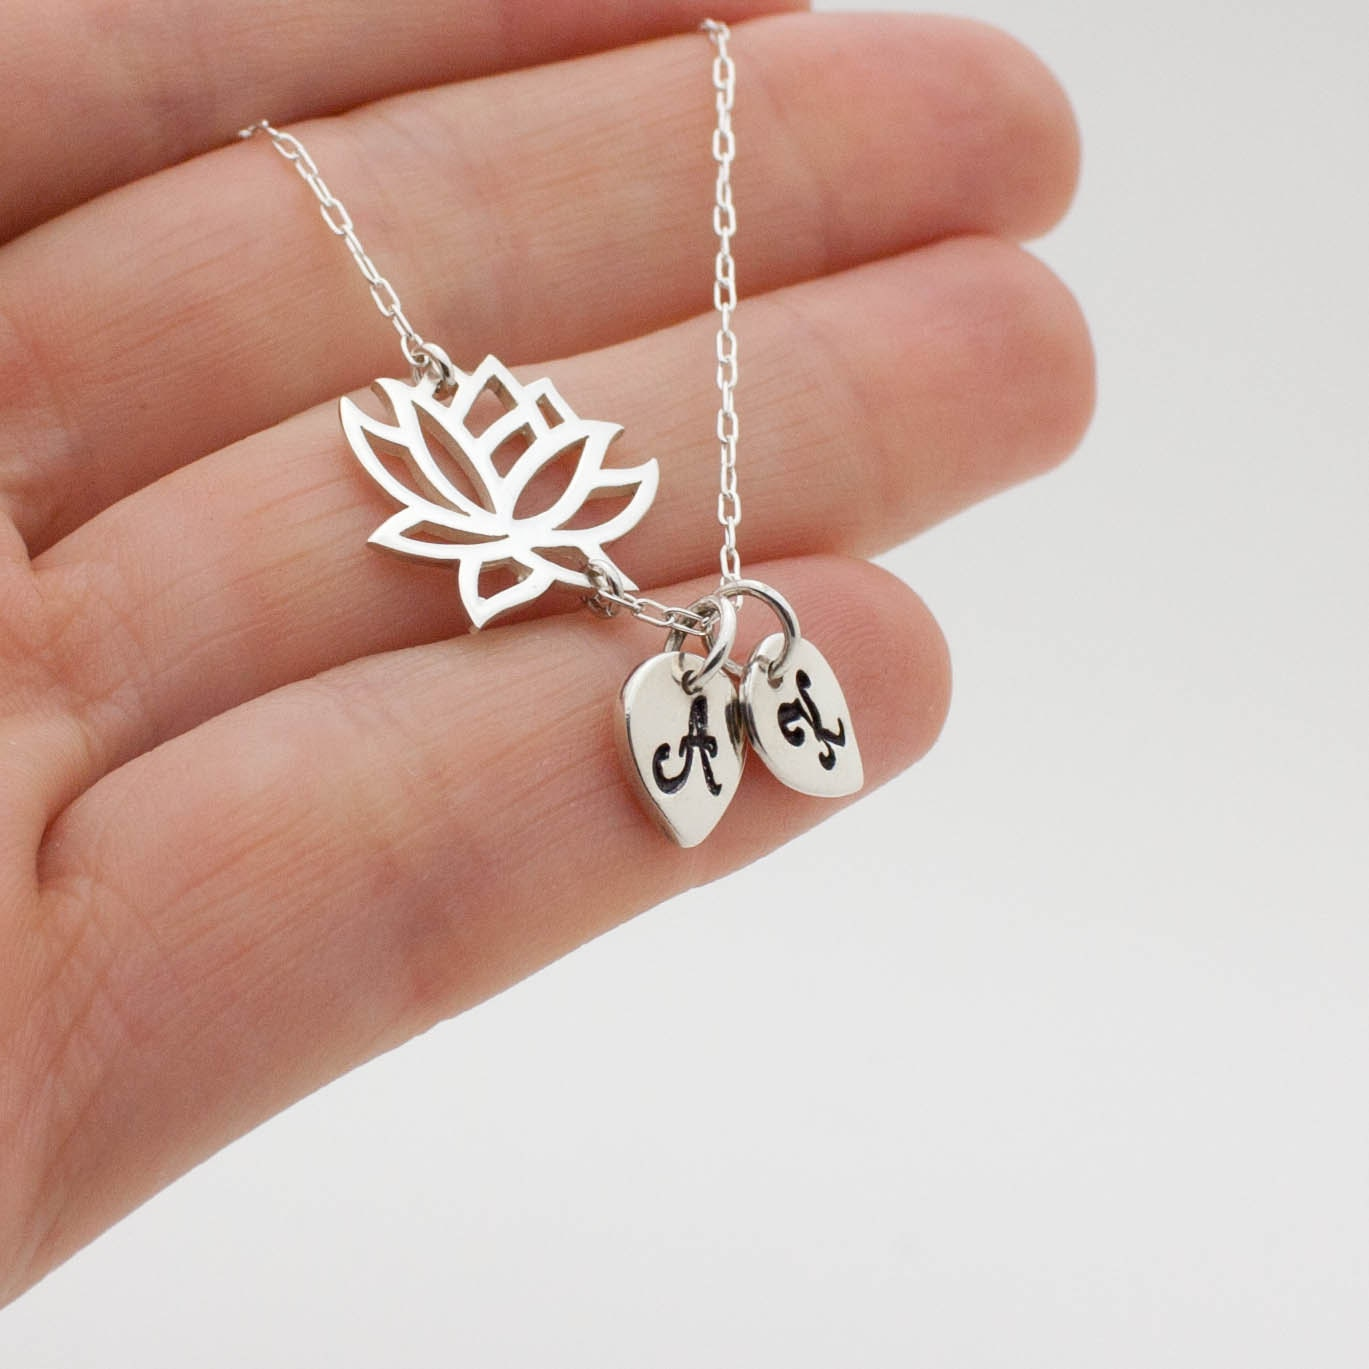 Silver Lotus Flower Necklace Personalized Yoga Jewelry 925